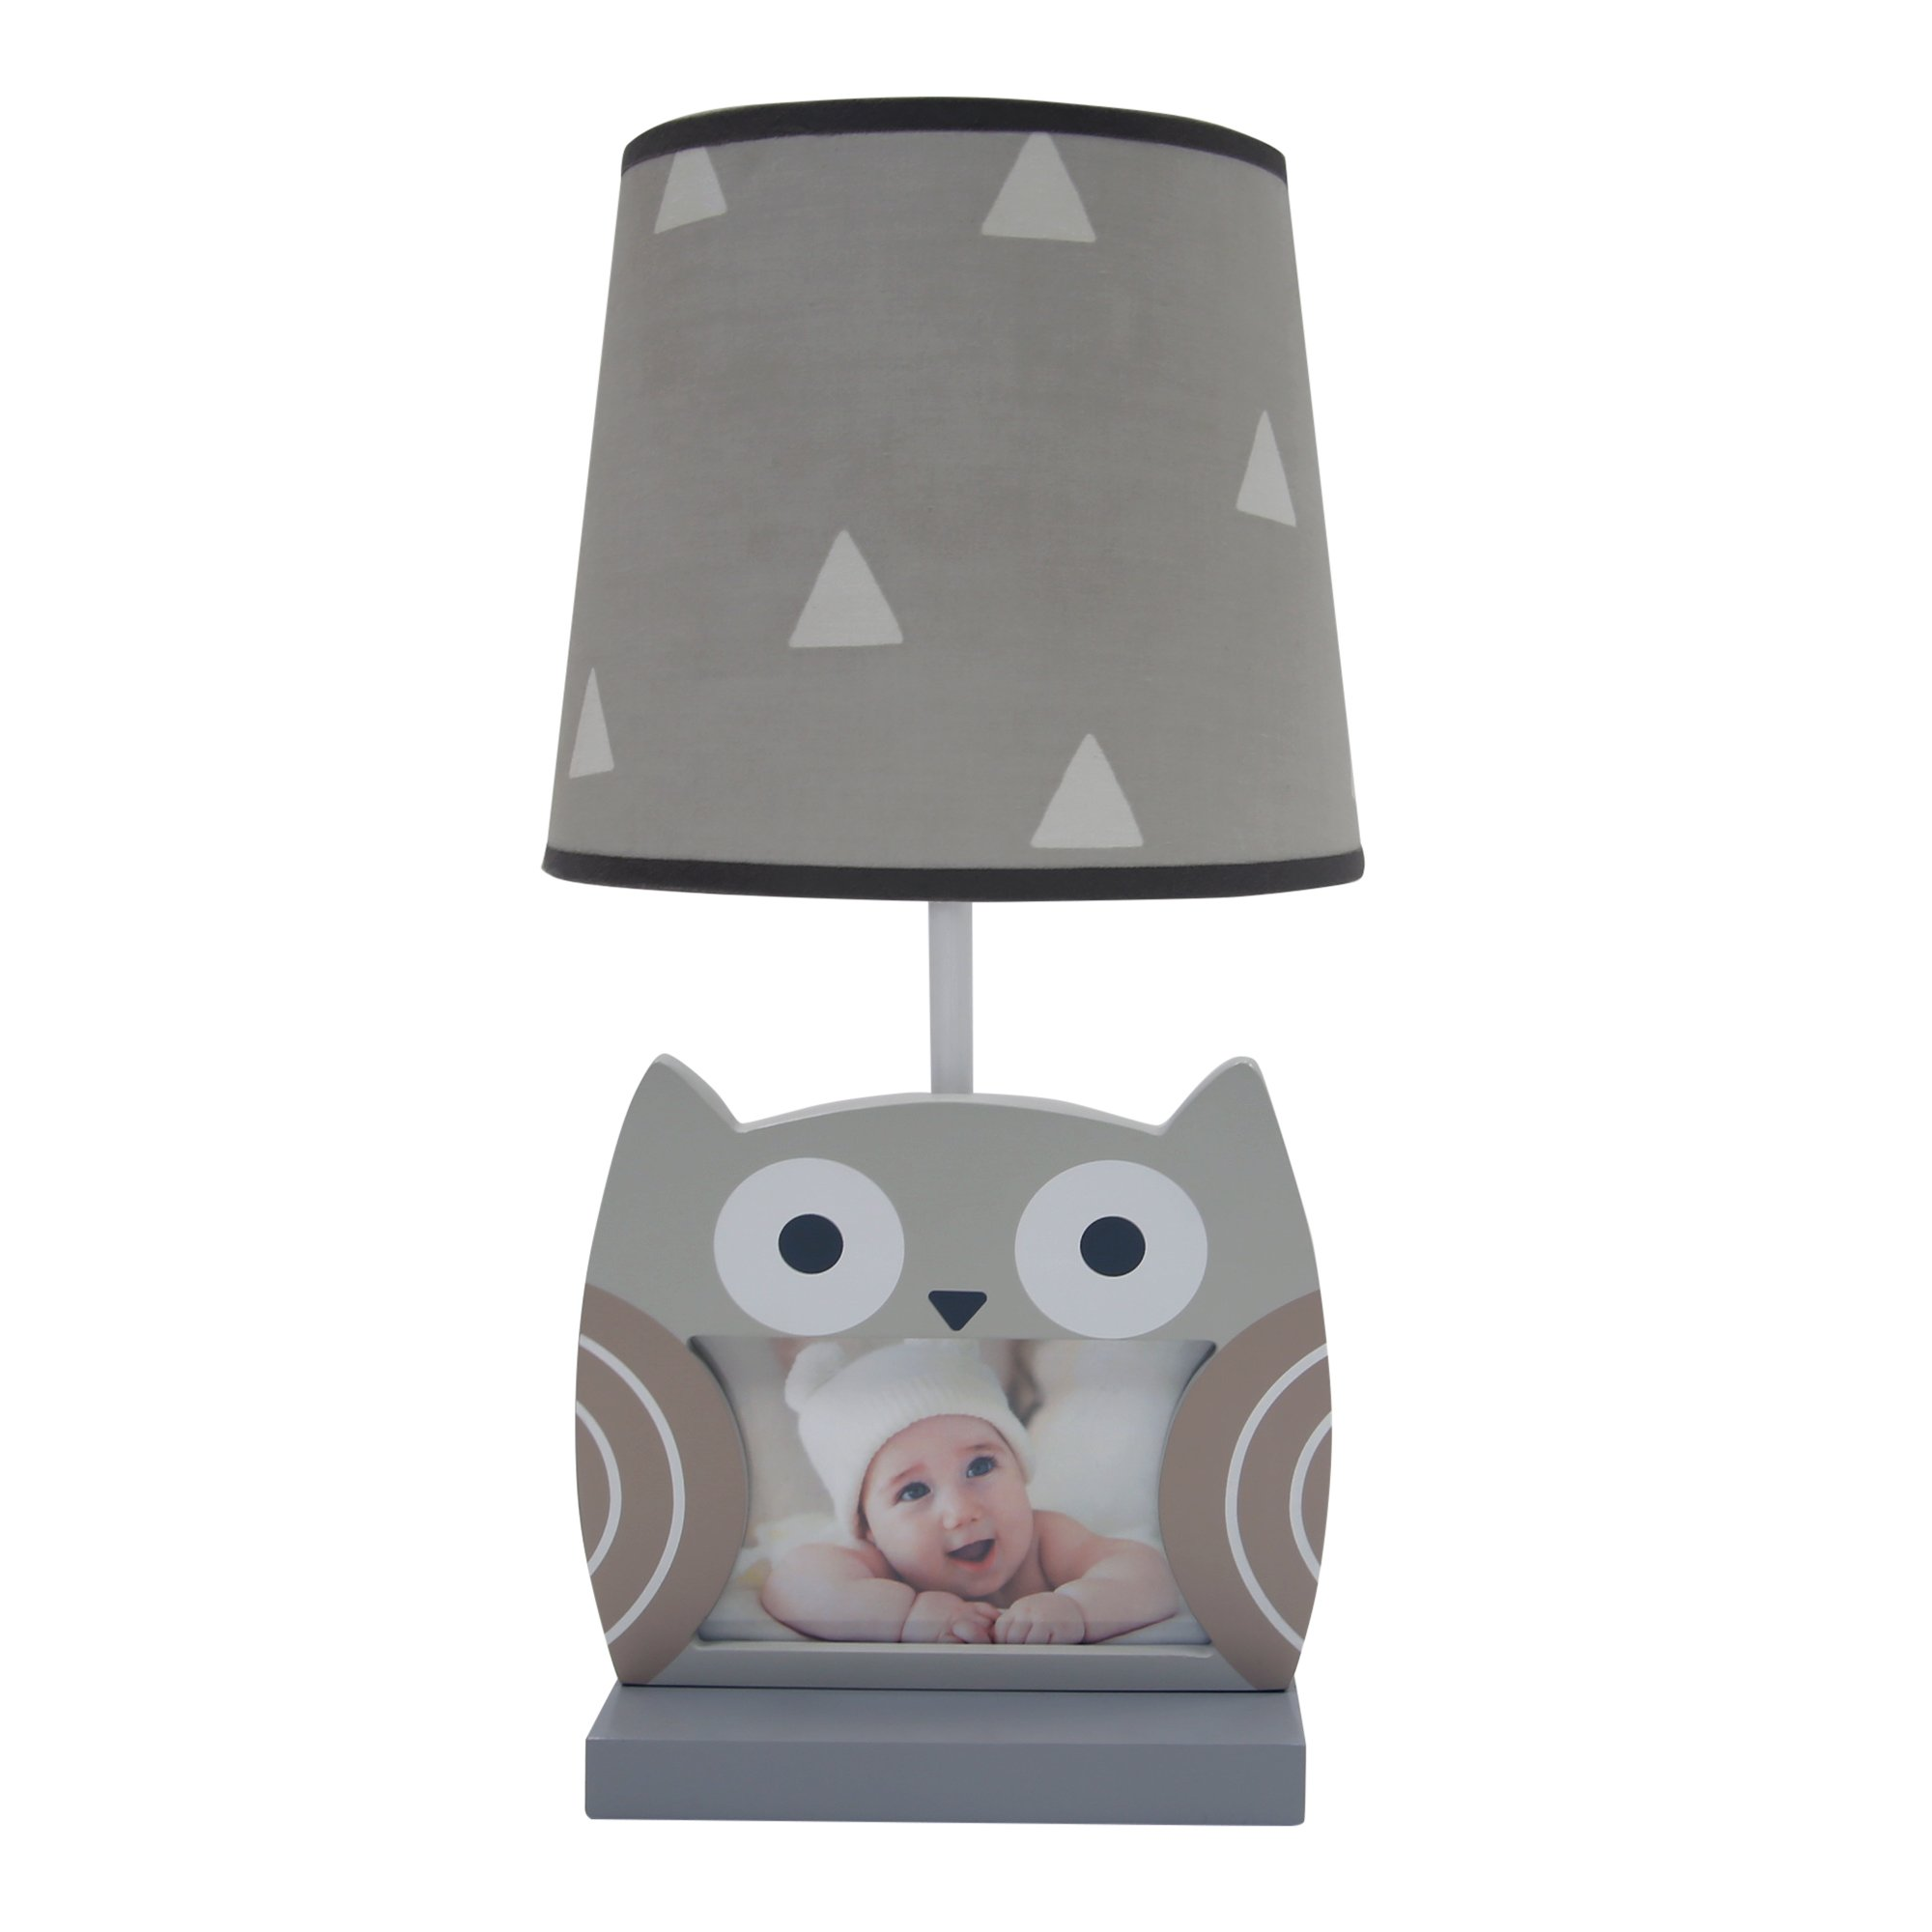 Bedtime Originals Little Rascals Owl Picture Frame Lamp with Shade & Bulb, Gray/White